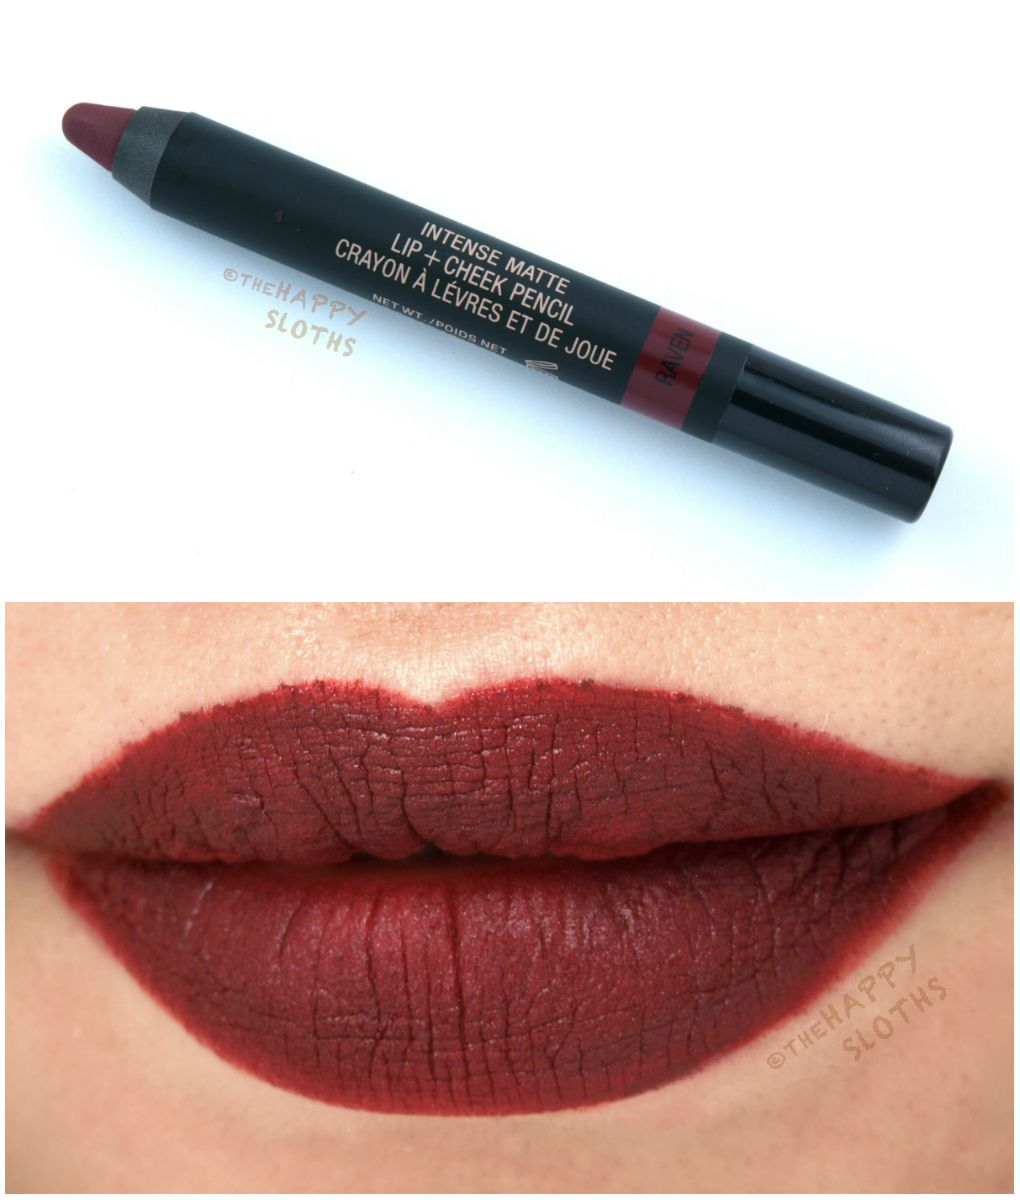 Communication on this topic: The One Thing: NUDESTIX Lip CheekPencil, the-one-thing-nudestix-lip-cheekpencil/